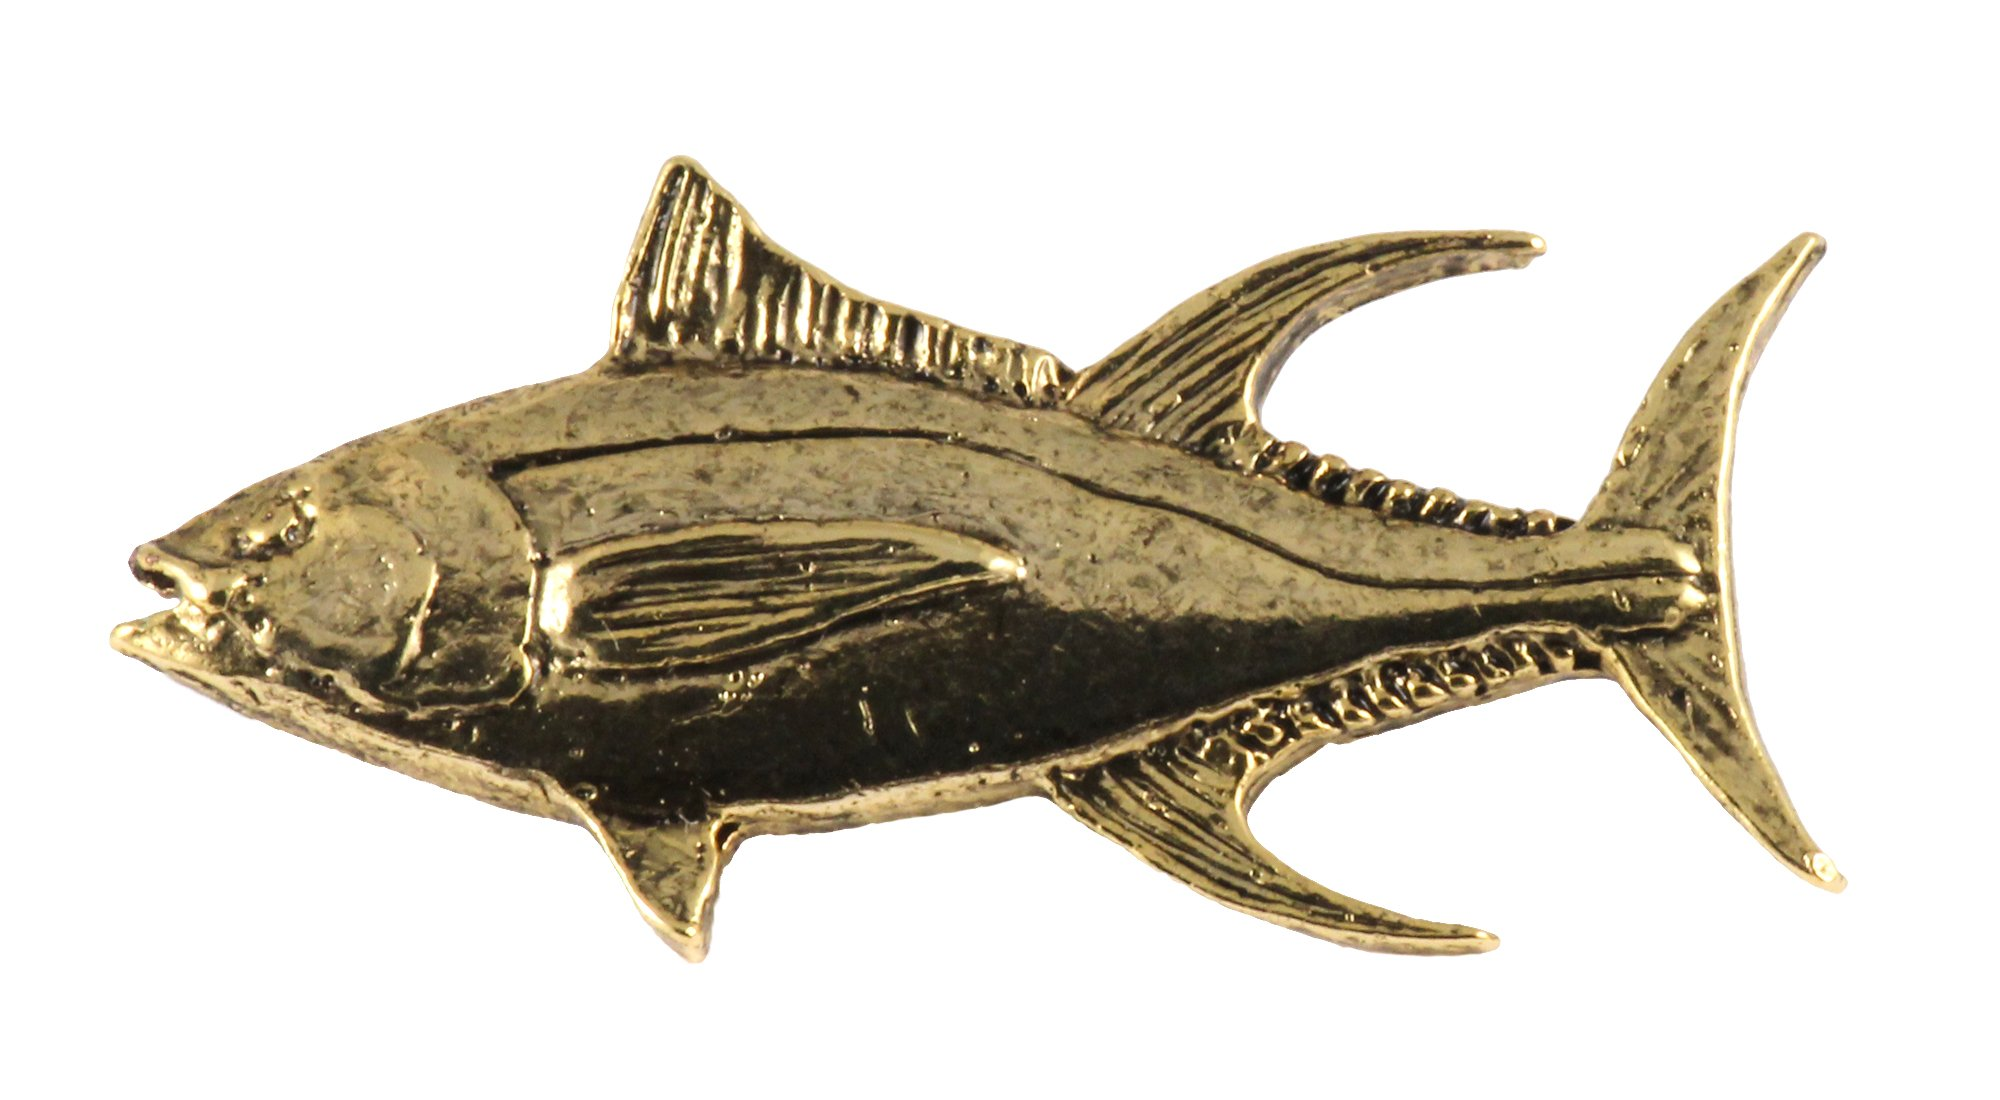 Creative Pewter Designs, Pewter Yellowfin Tuna Handcrafted Saltwater Fish Lapel Pin Brooch, 24k Gold Plated, SG011